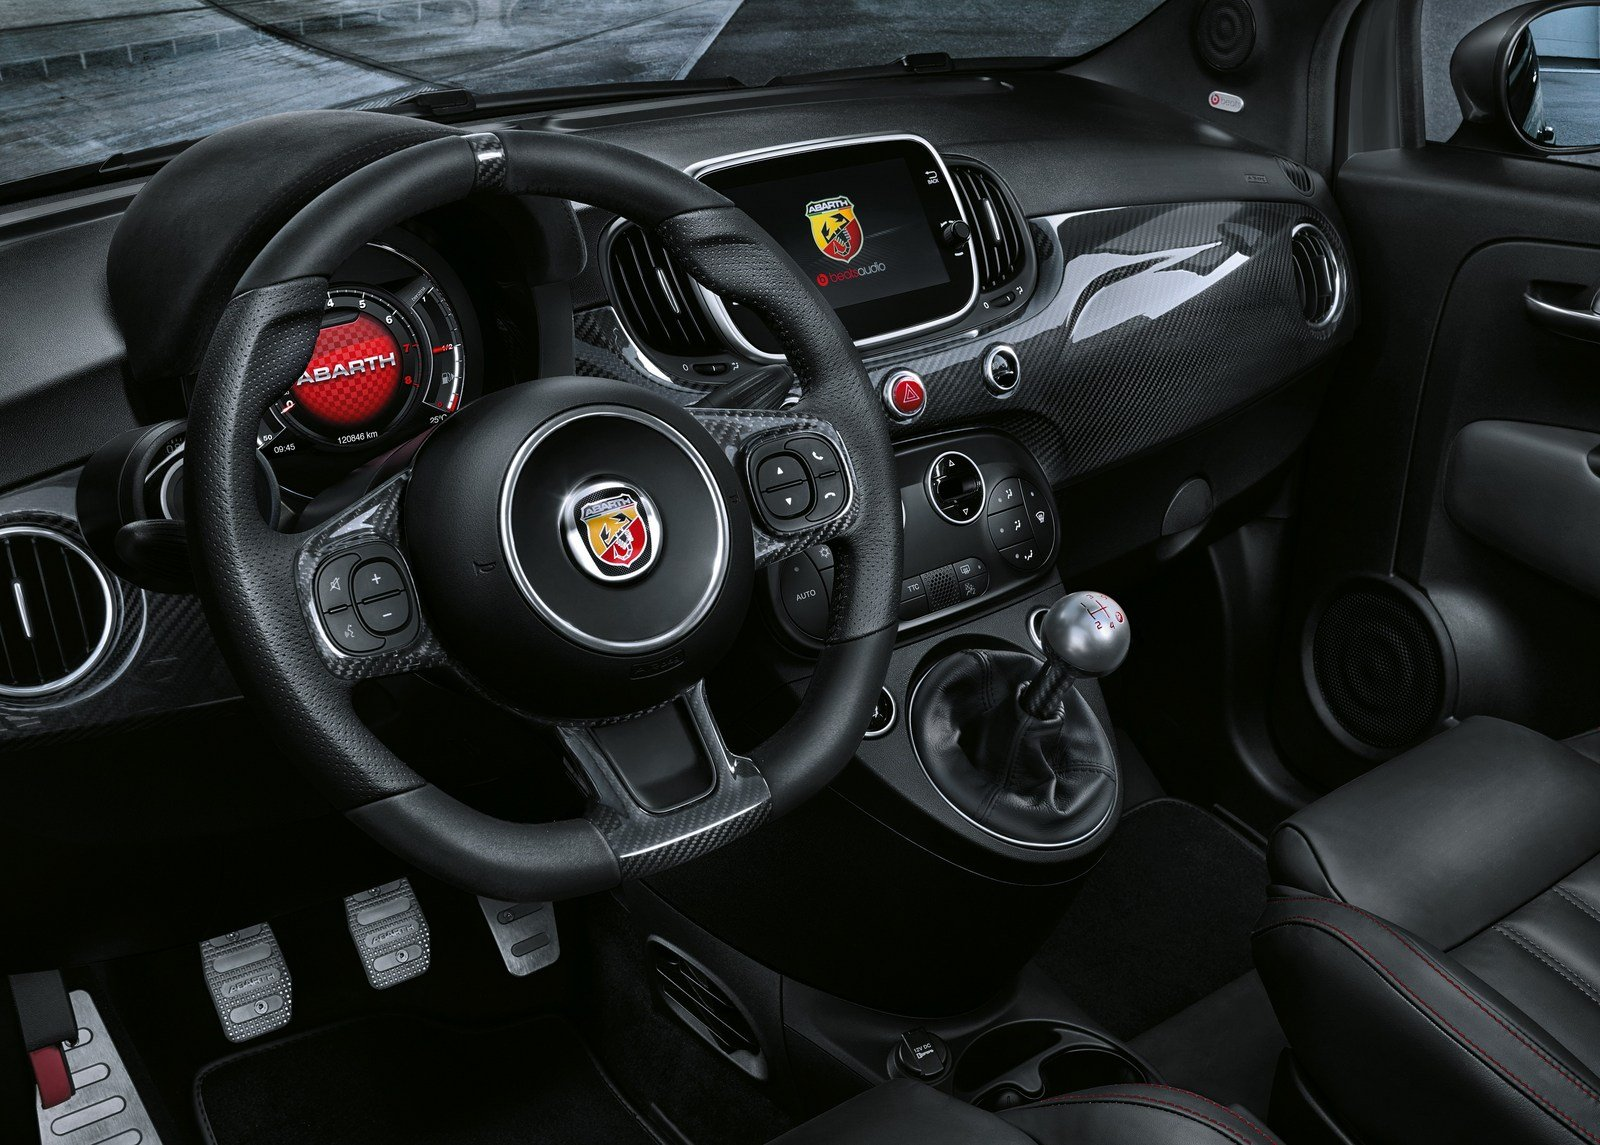 2017 abarth 695 xsr yamaha limited edition picture. Black Bedroom Furniture Sets. Home Design Ideas